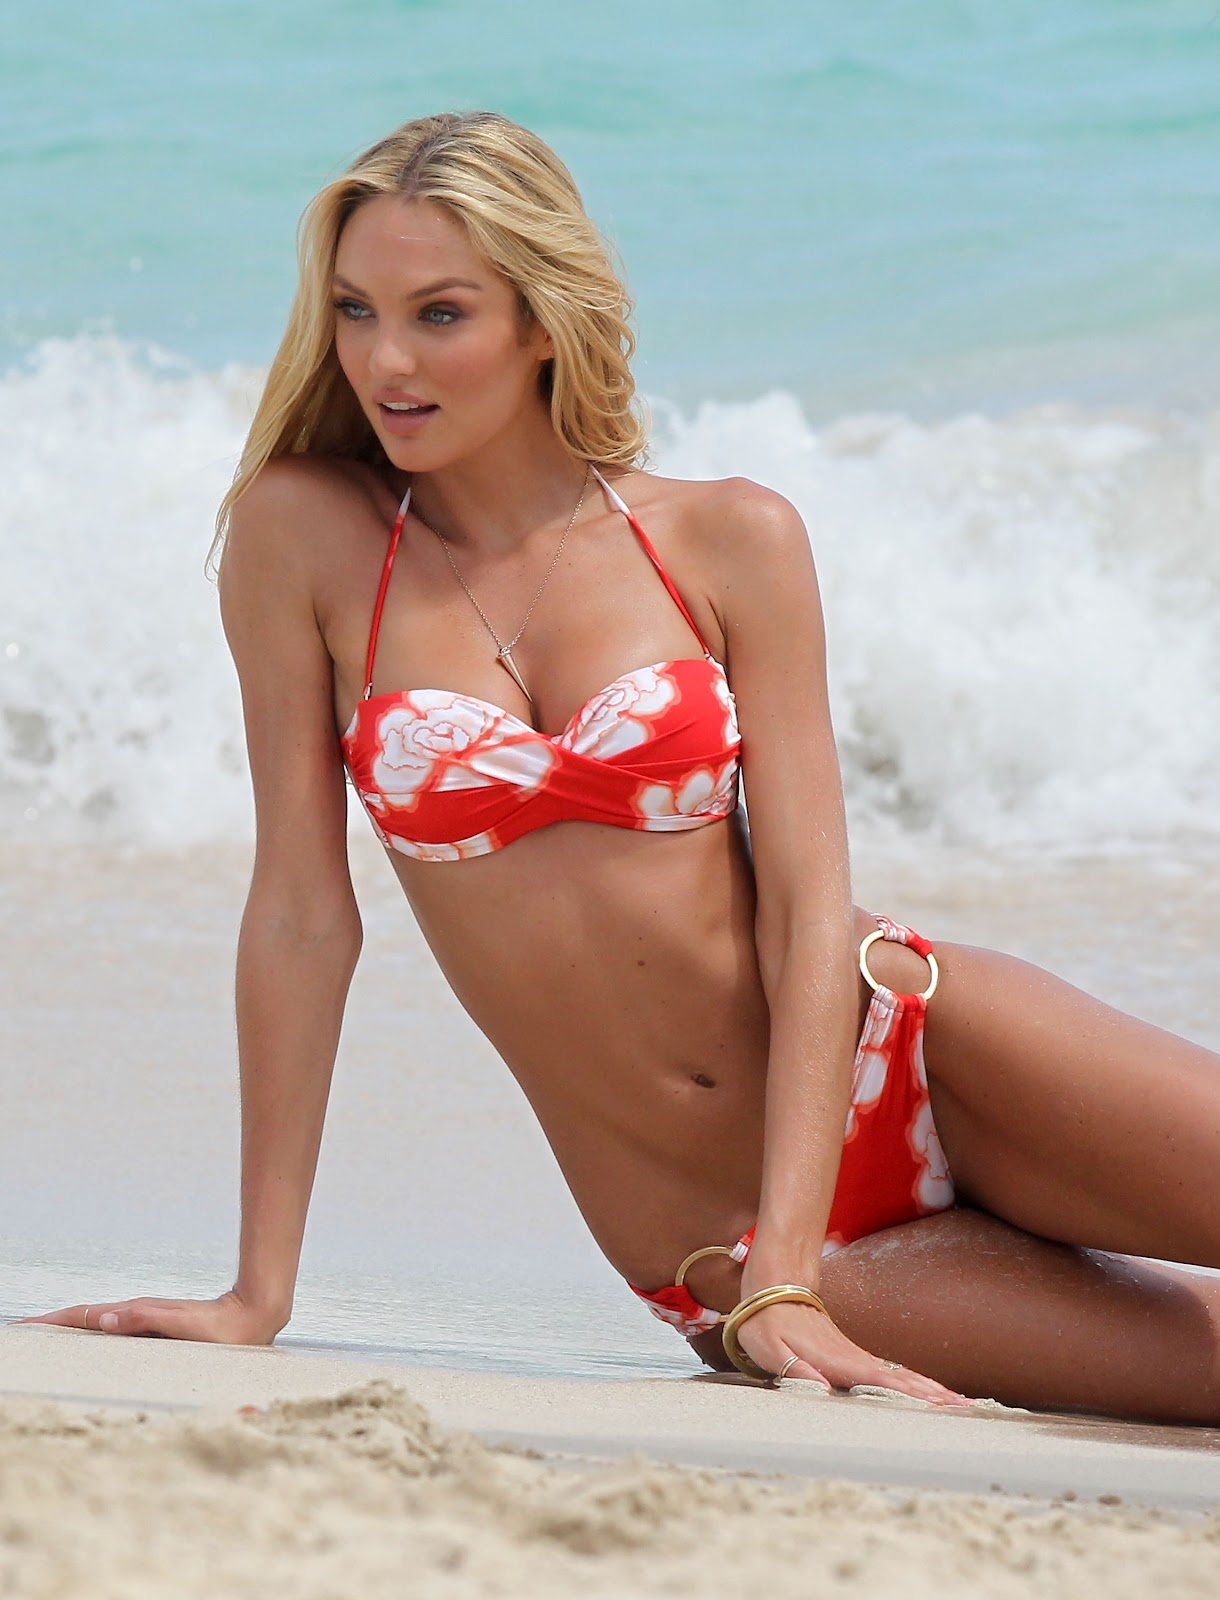 Something is. candice swanepoel hot bikini join. All